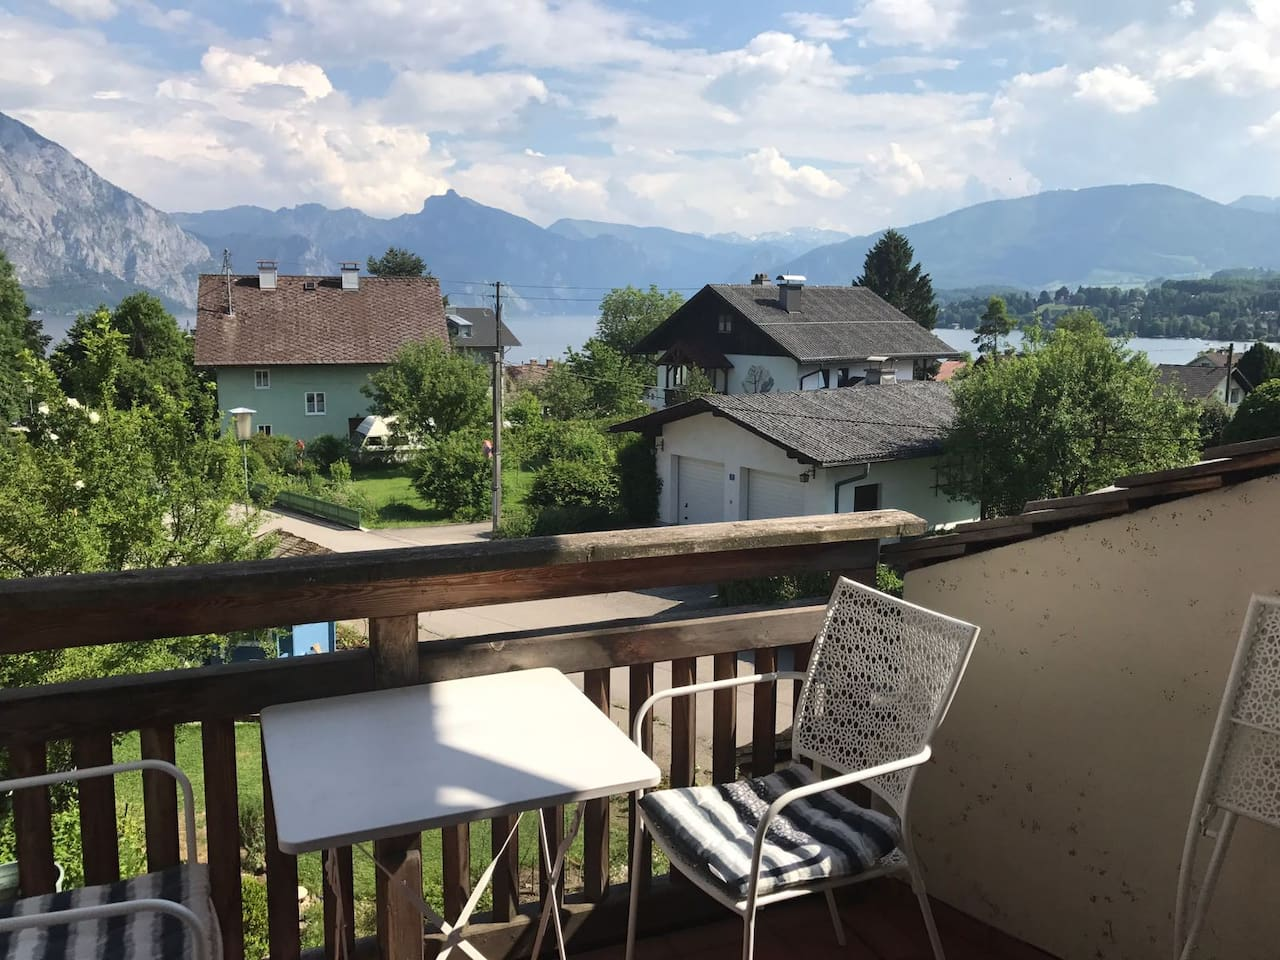 Your own private balcony with a view of the lake Traunsee and the Alps beyond.